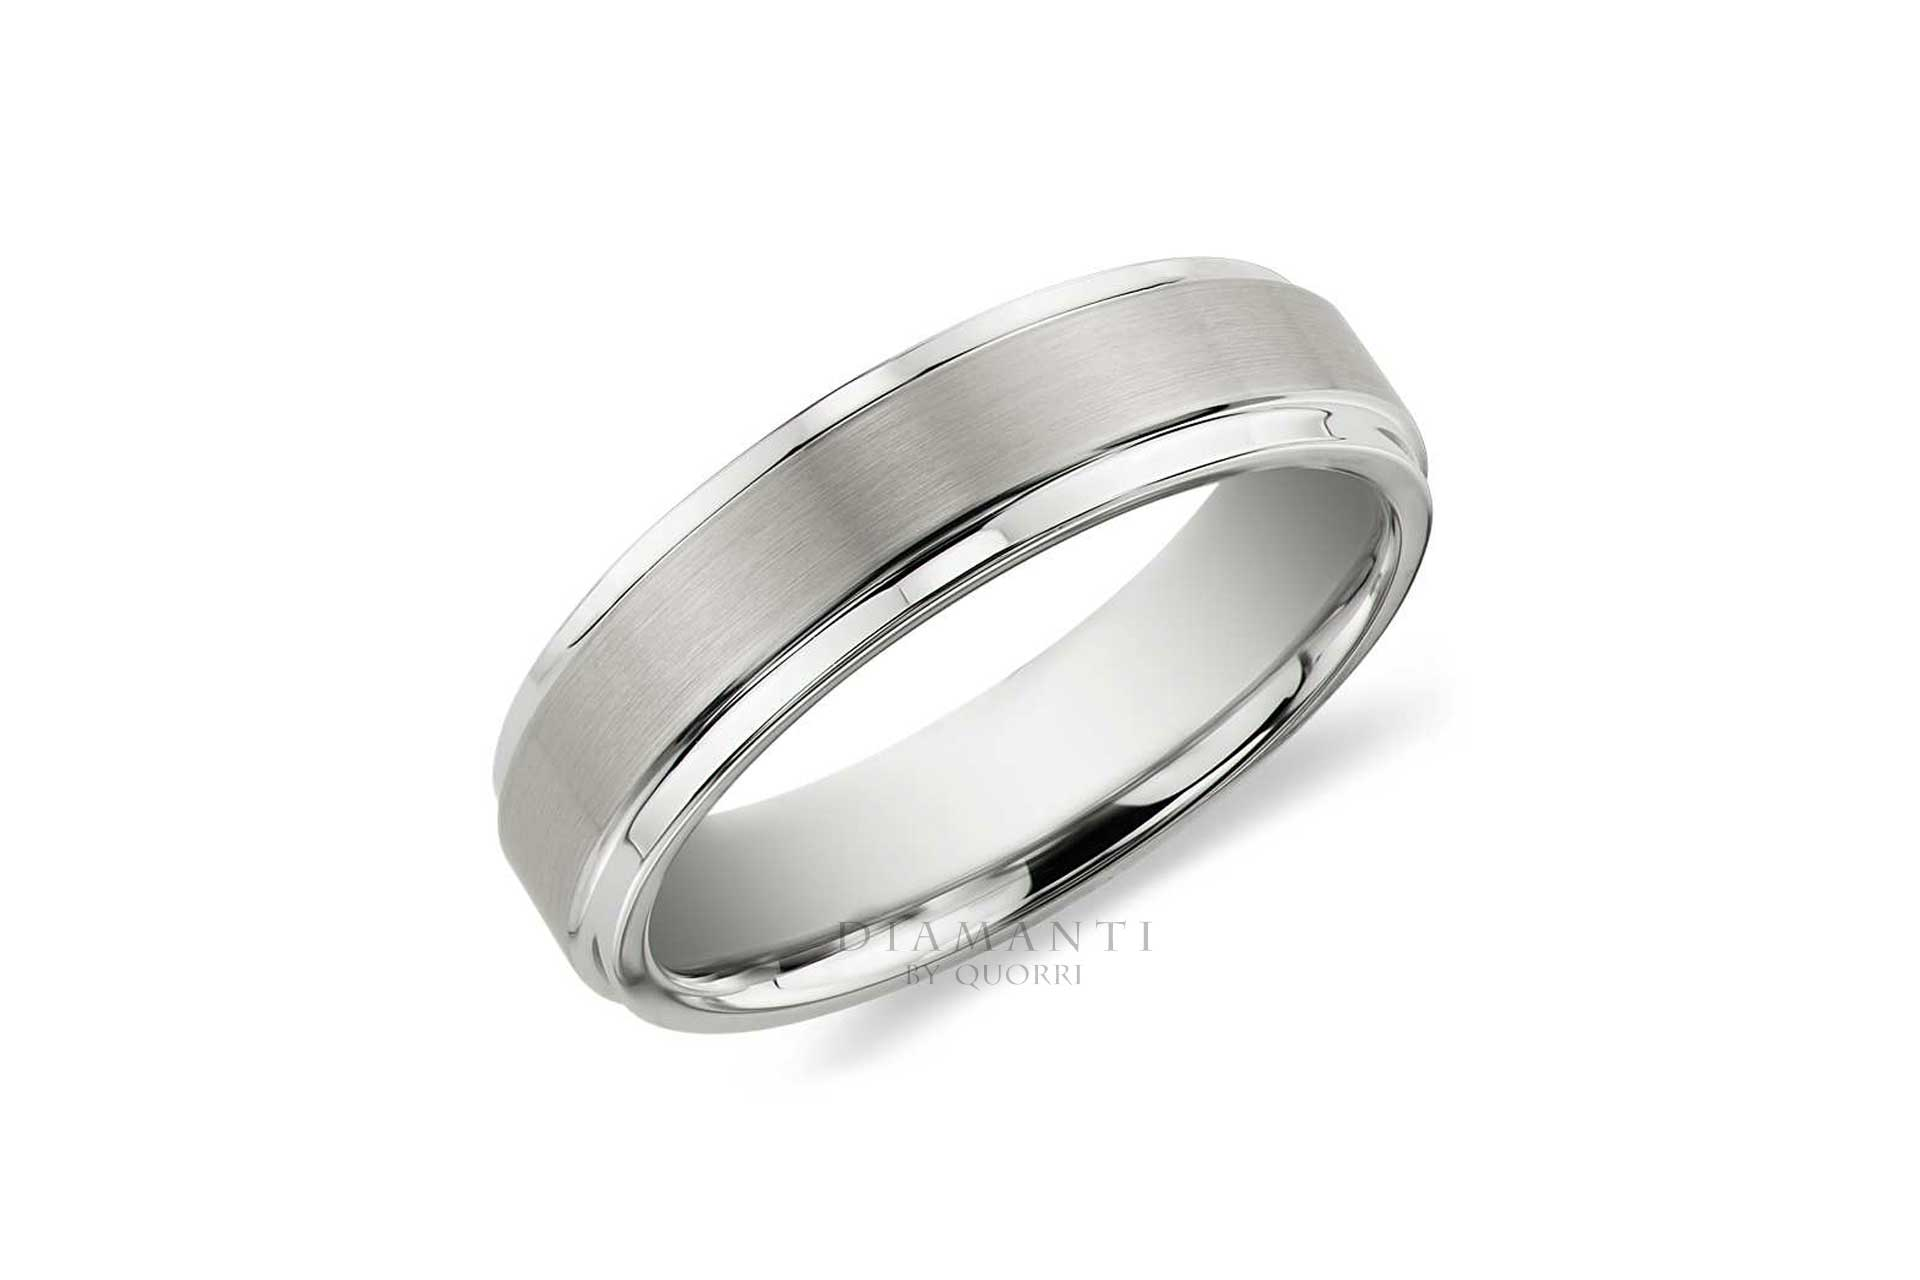 low cost gold mens wedding bands by quorri canada